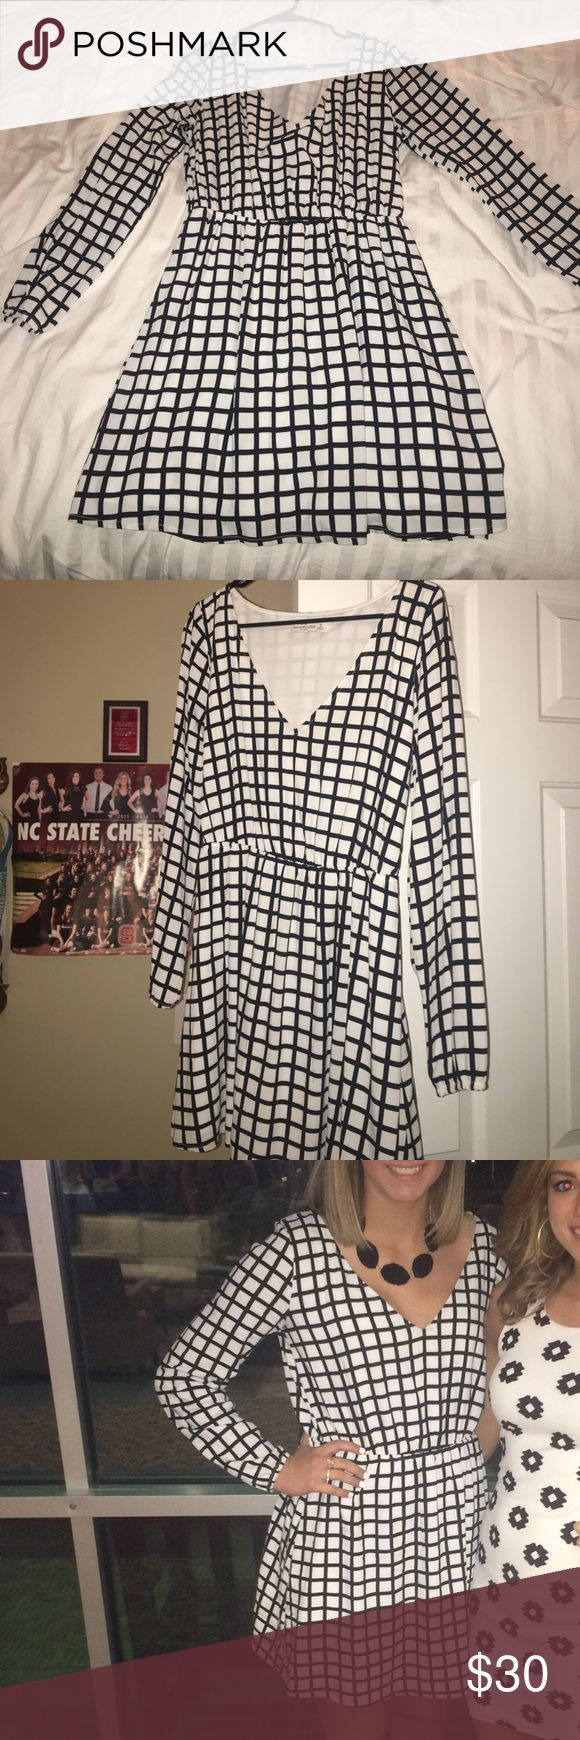 Black and White Abercrombie and Fitch Dress Long sleeve black and white Abercrombie dress. Only worn once. Abercrombie & Fitch Dresses Long Sleeve